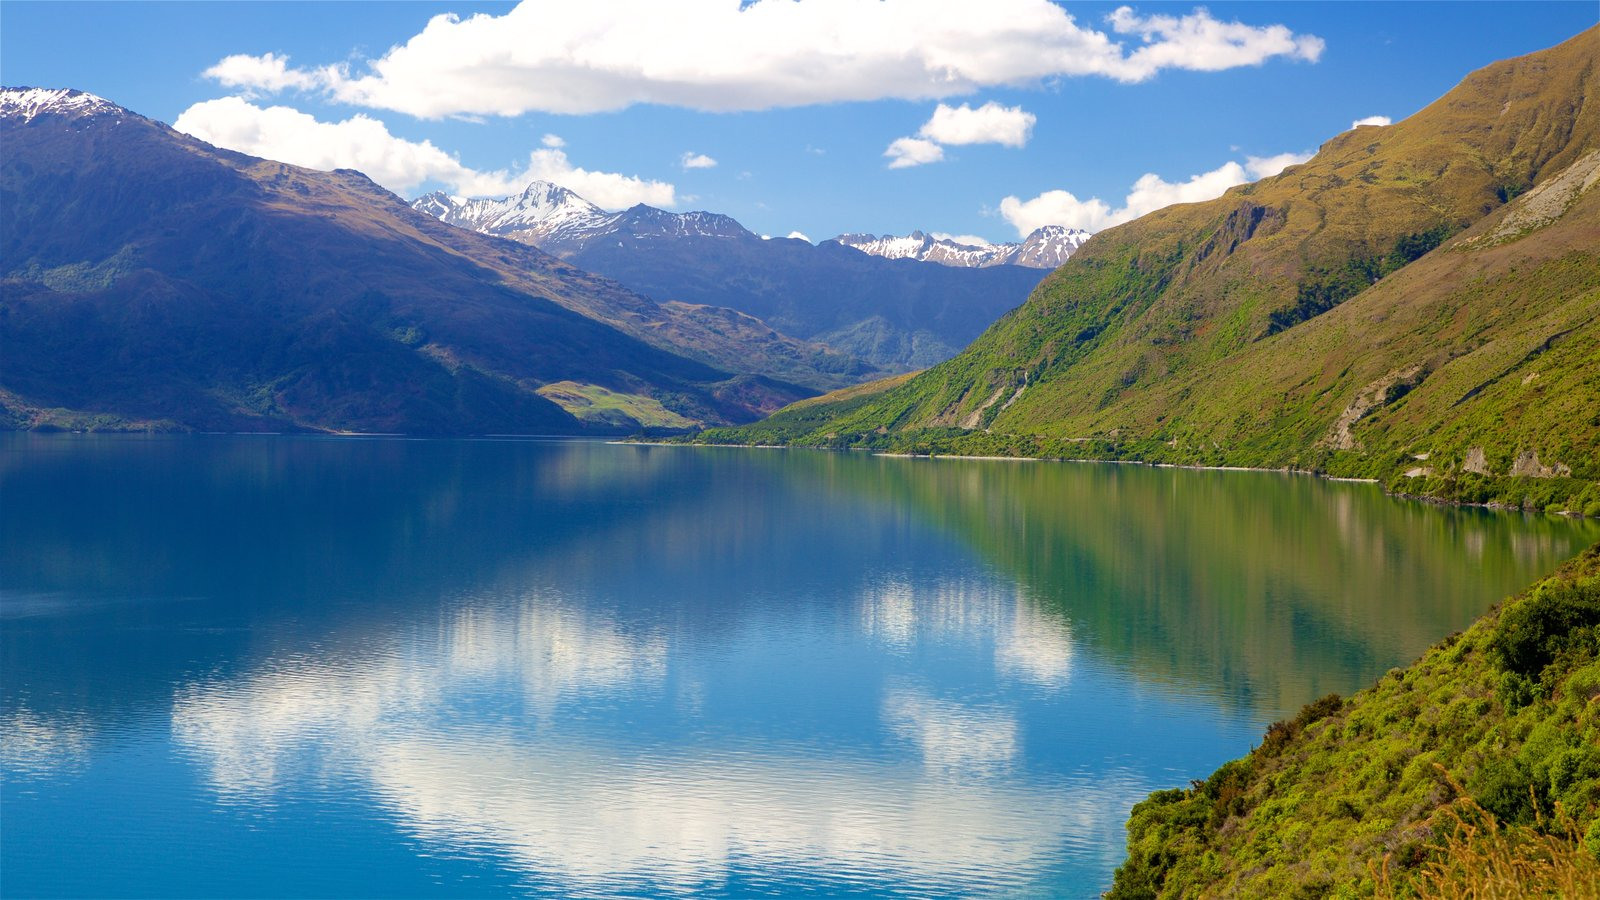 Otago which includes mountains, landscape views and a lake or waterhole